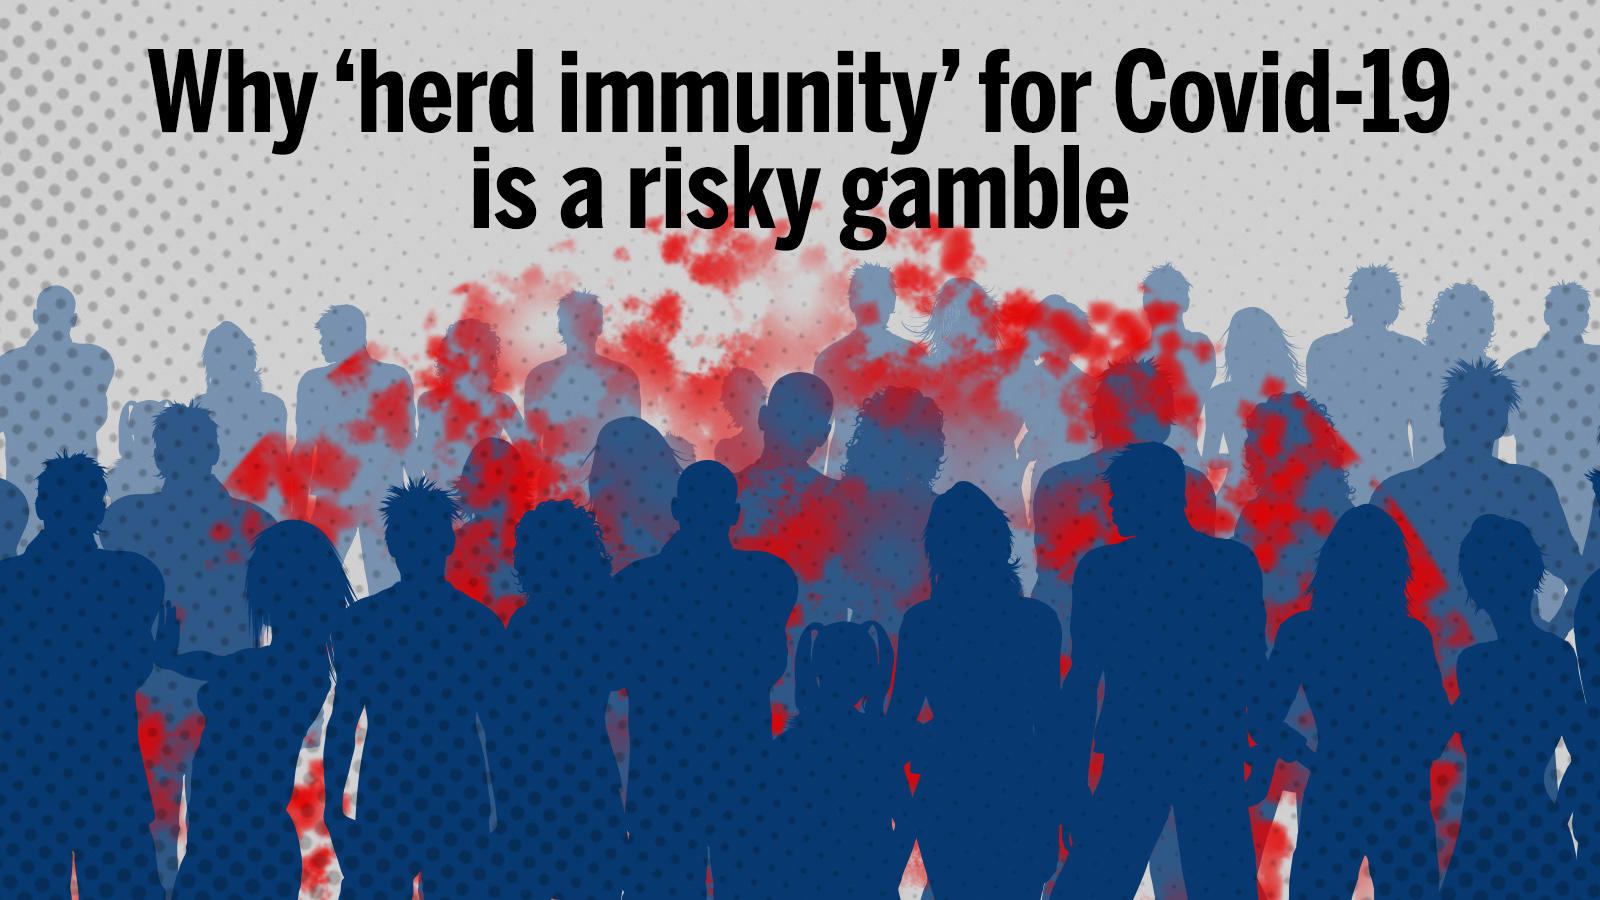 Why 'herd immunity' for Covid-19 is a risky gamble - Times of India